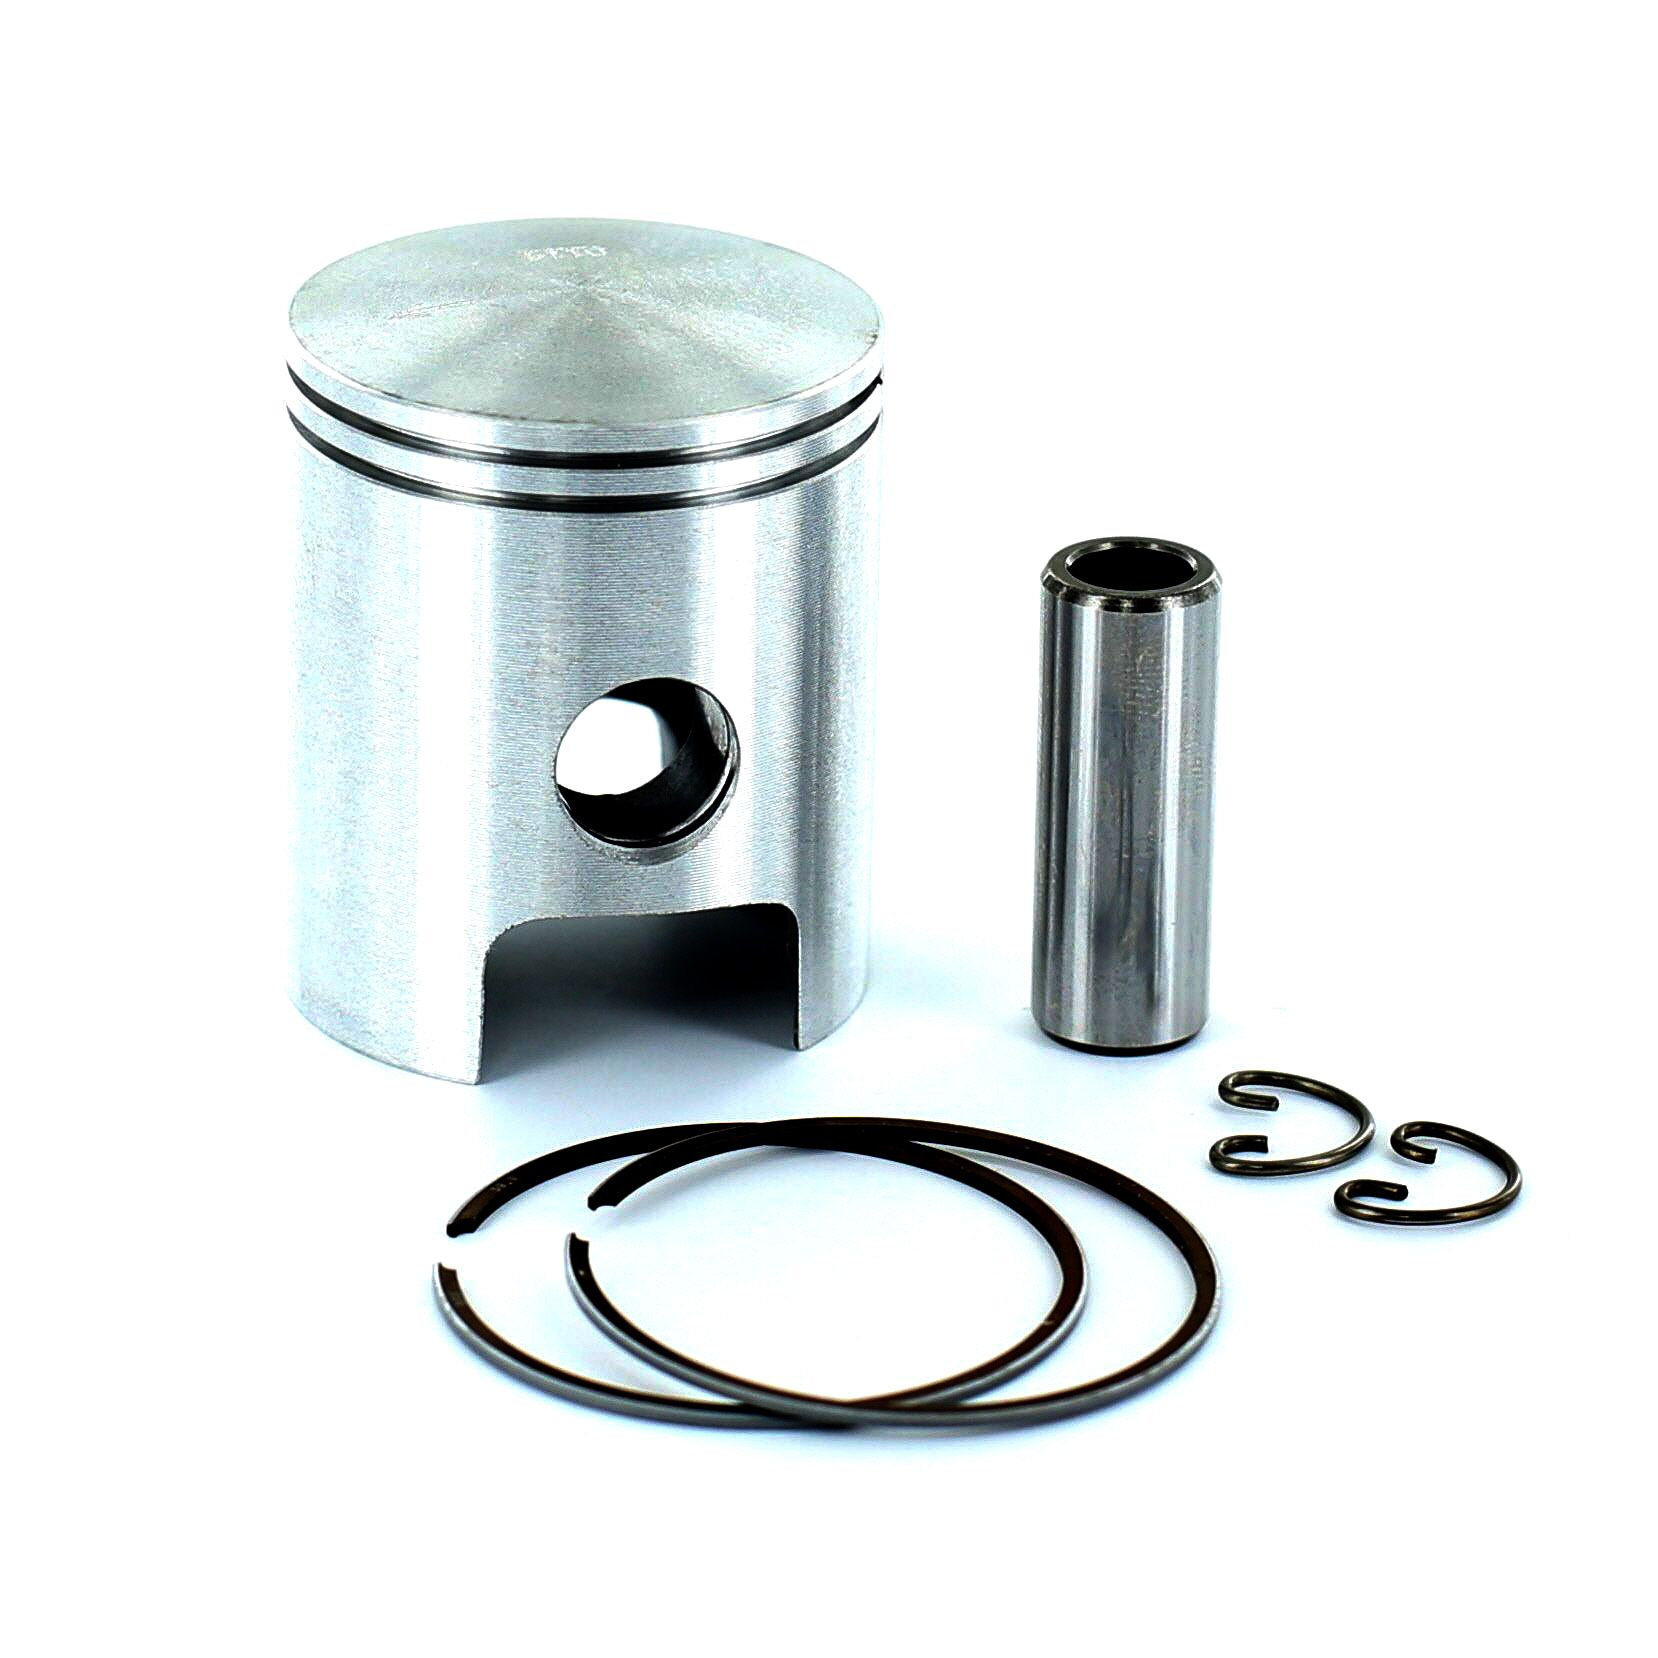 Piston D.39,9 Barikit Fonte Axe 12 Derbi Euro 2/Euro 3 50cc